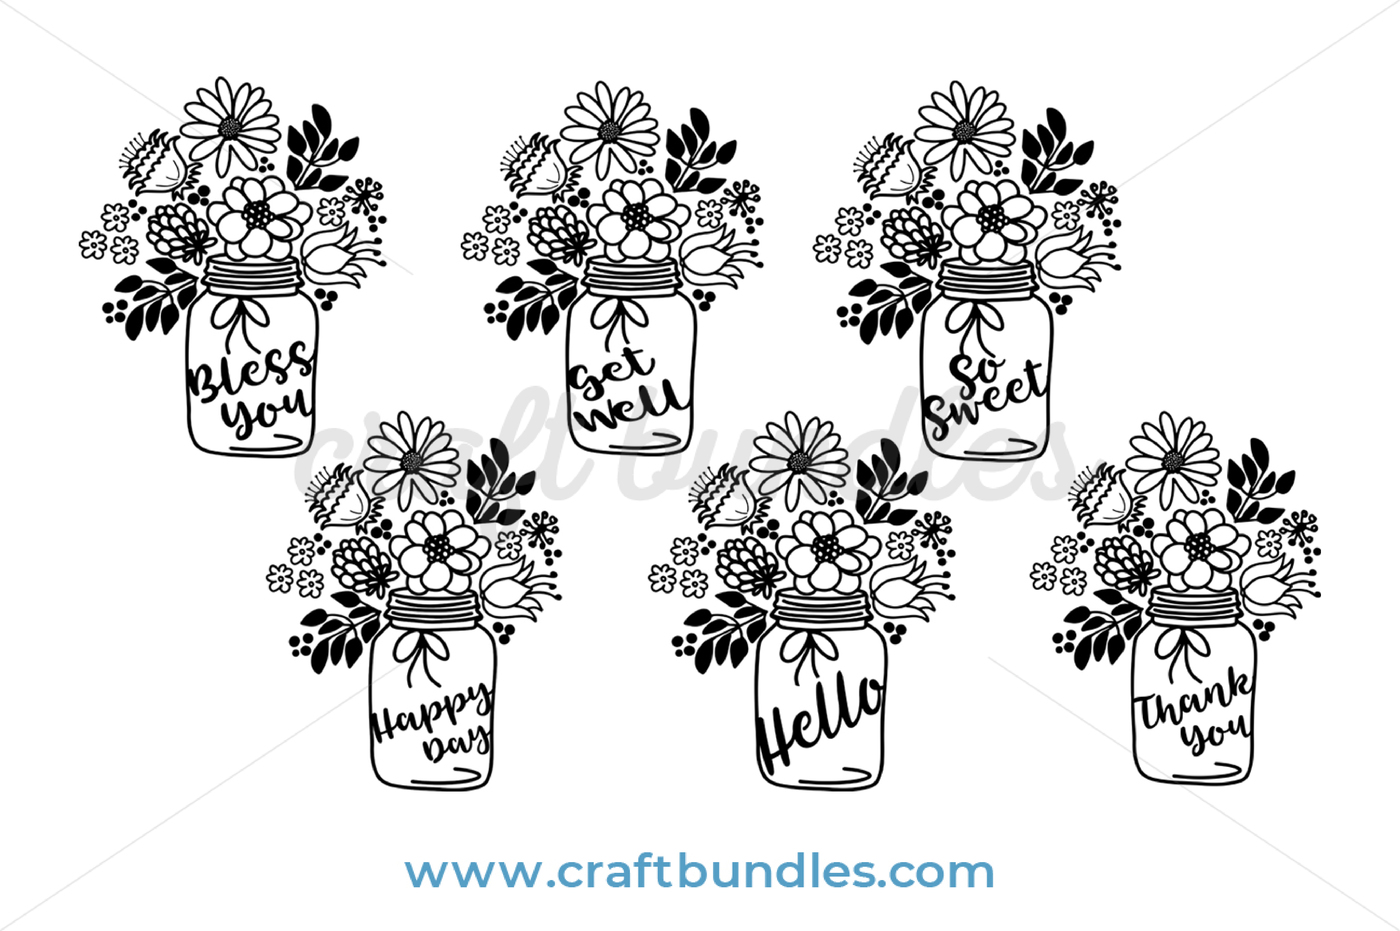 FREE Floral Jar Bouquet SVG Cut File